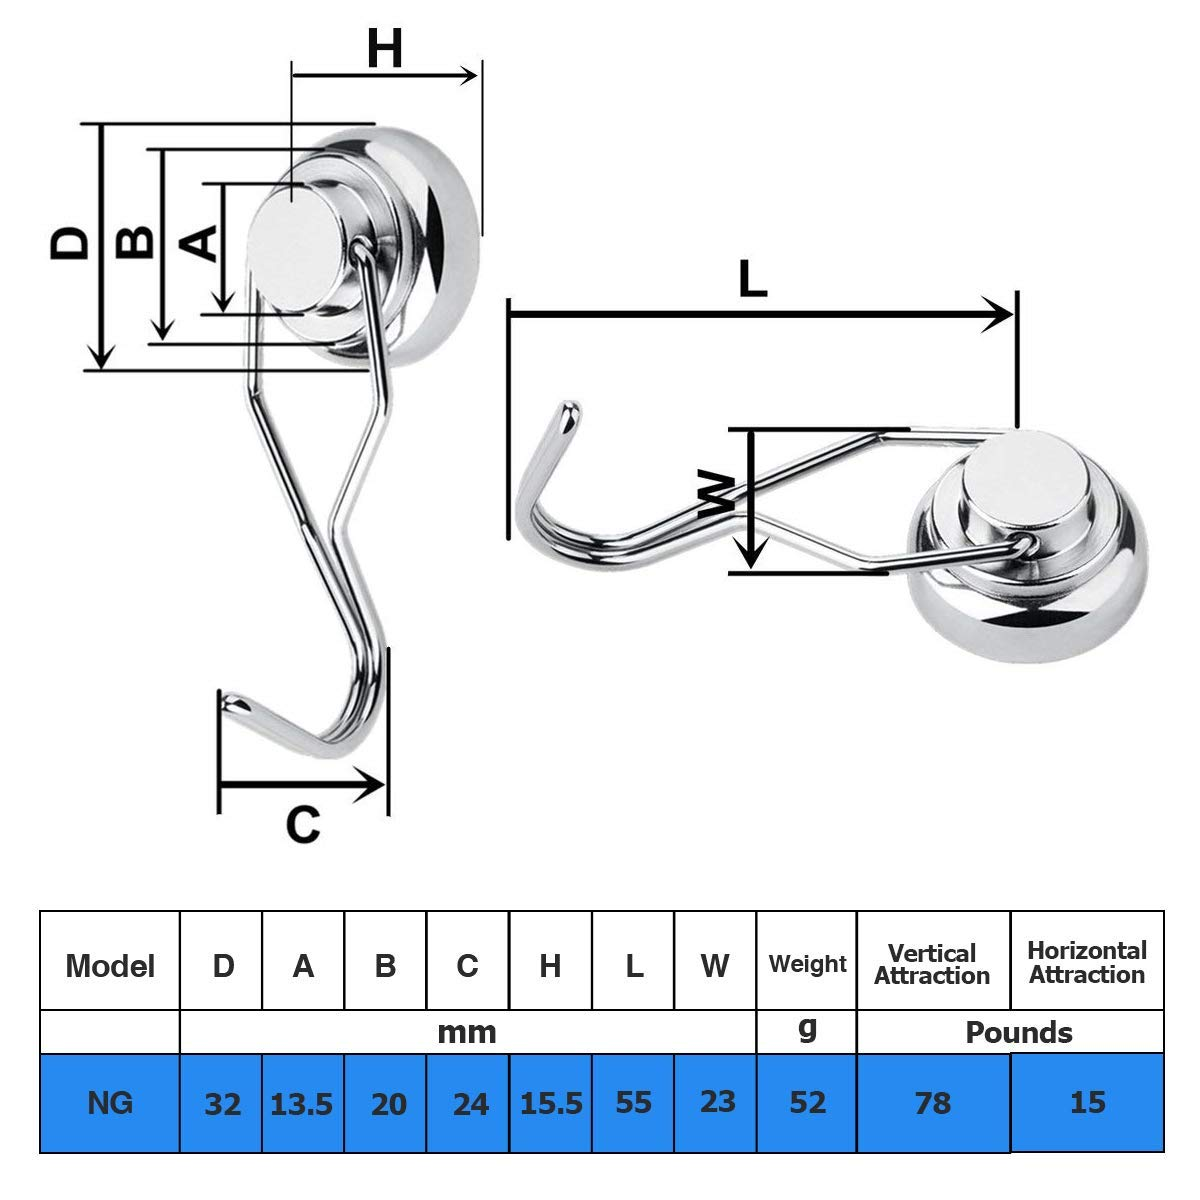 Magnetic Hooks Heavy Duty Great for Your Refrigerator and Other Magnetic Surfaces 6 Pack Wukong 75LBS Rotating Swivel Swing Strong Neodymium Magnet Hooks